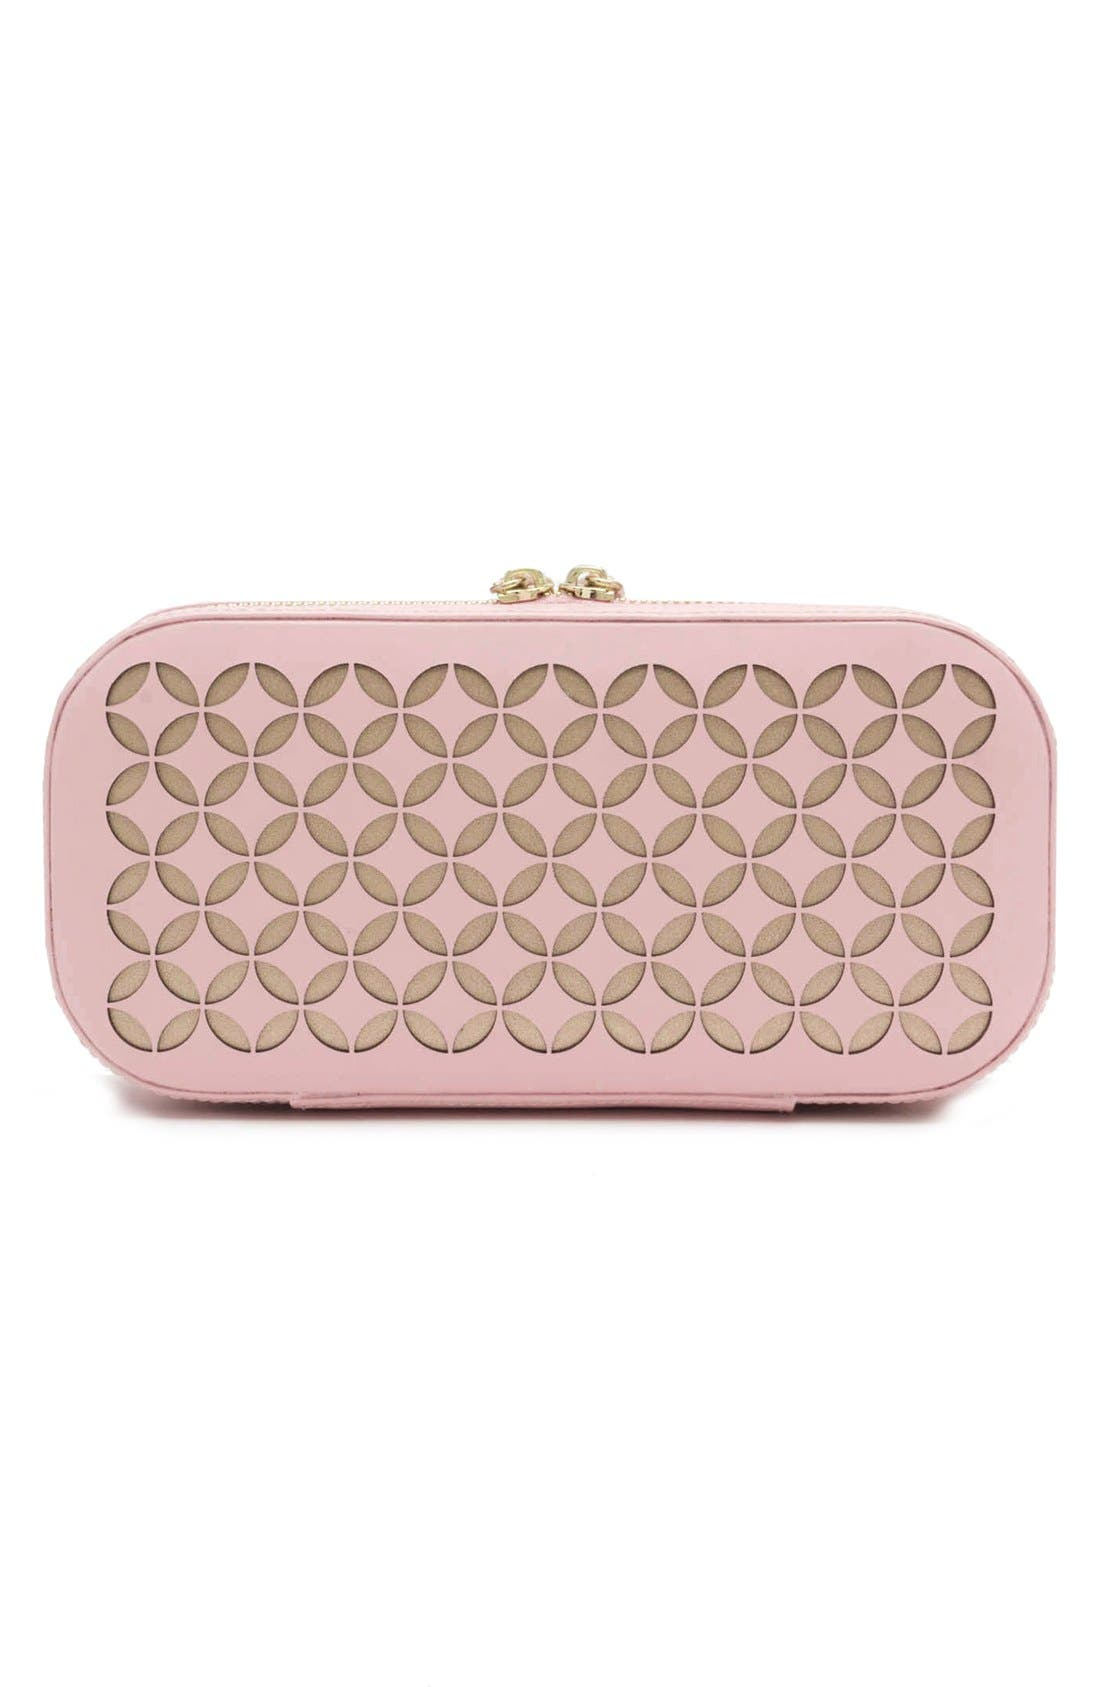 Chloe Zip Jewelry Case,                             Alternate thumbnail 3, color,                             650